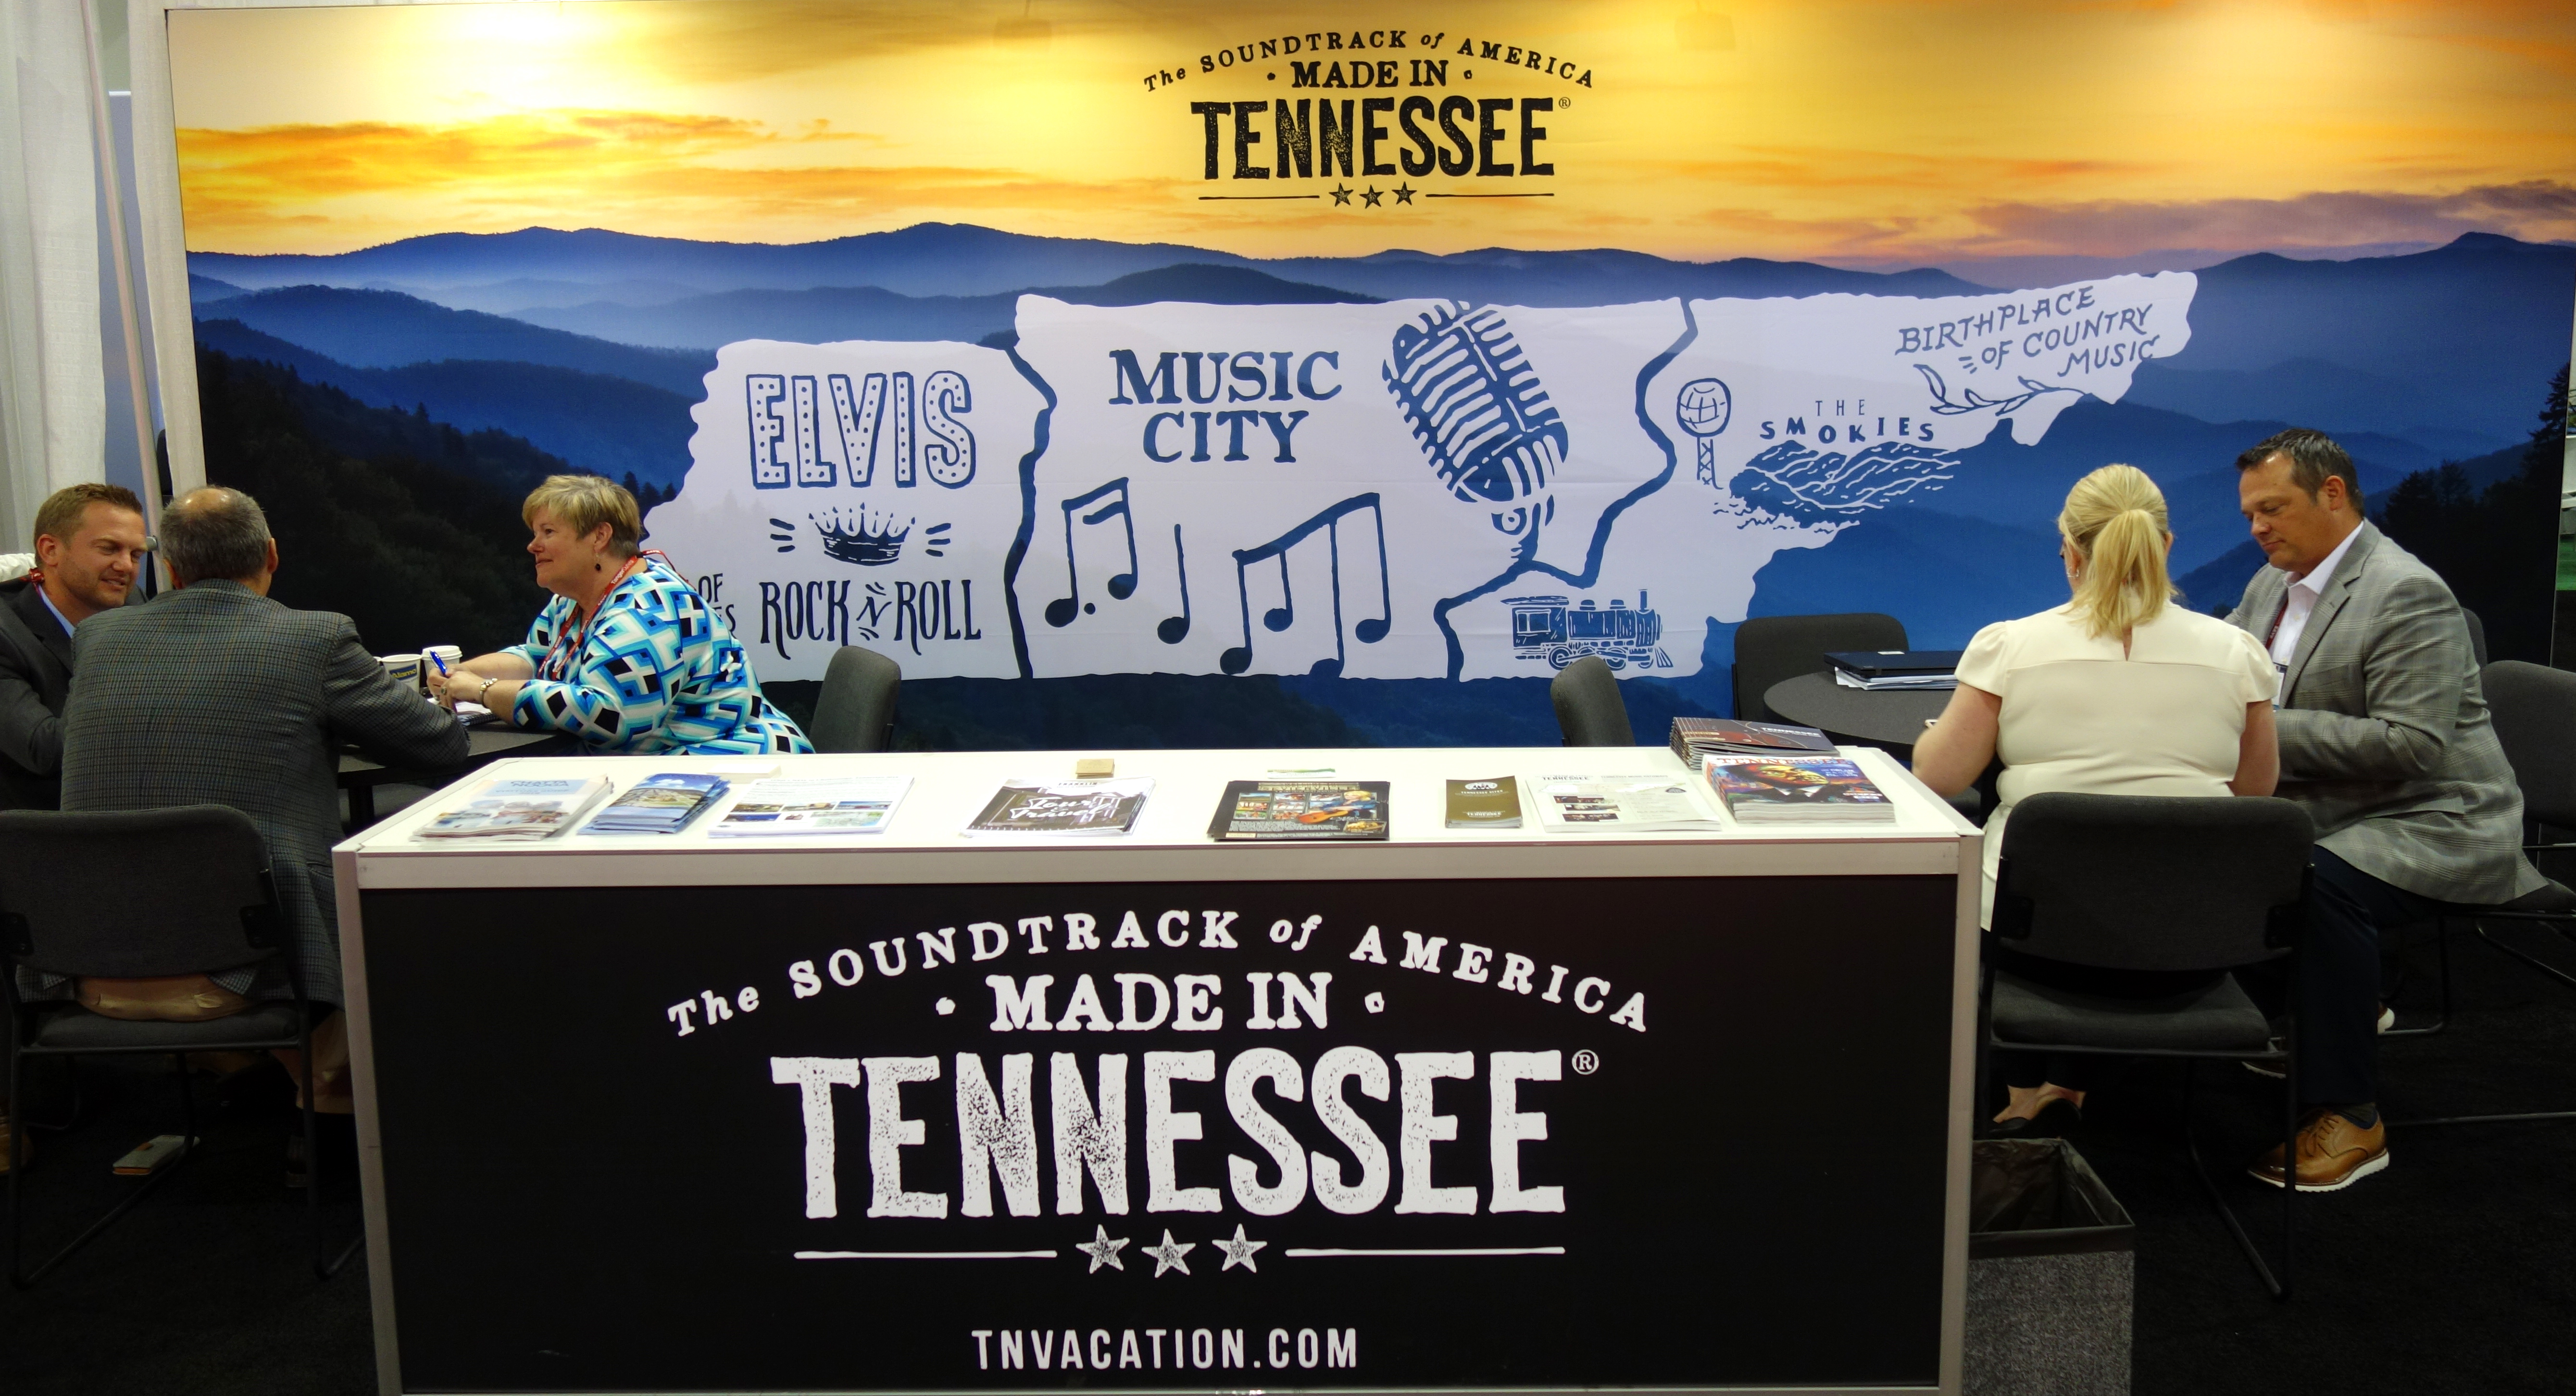 TDTD and Tennessee partners promote the state to tour operators and media at IPW.